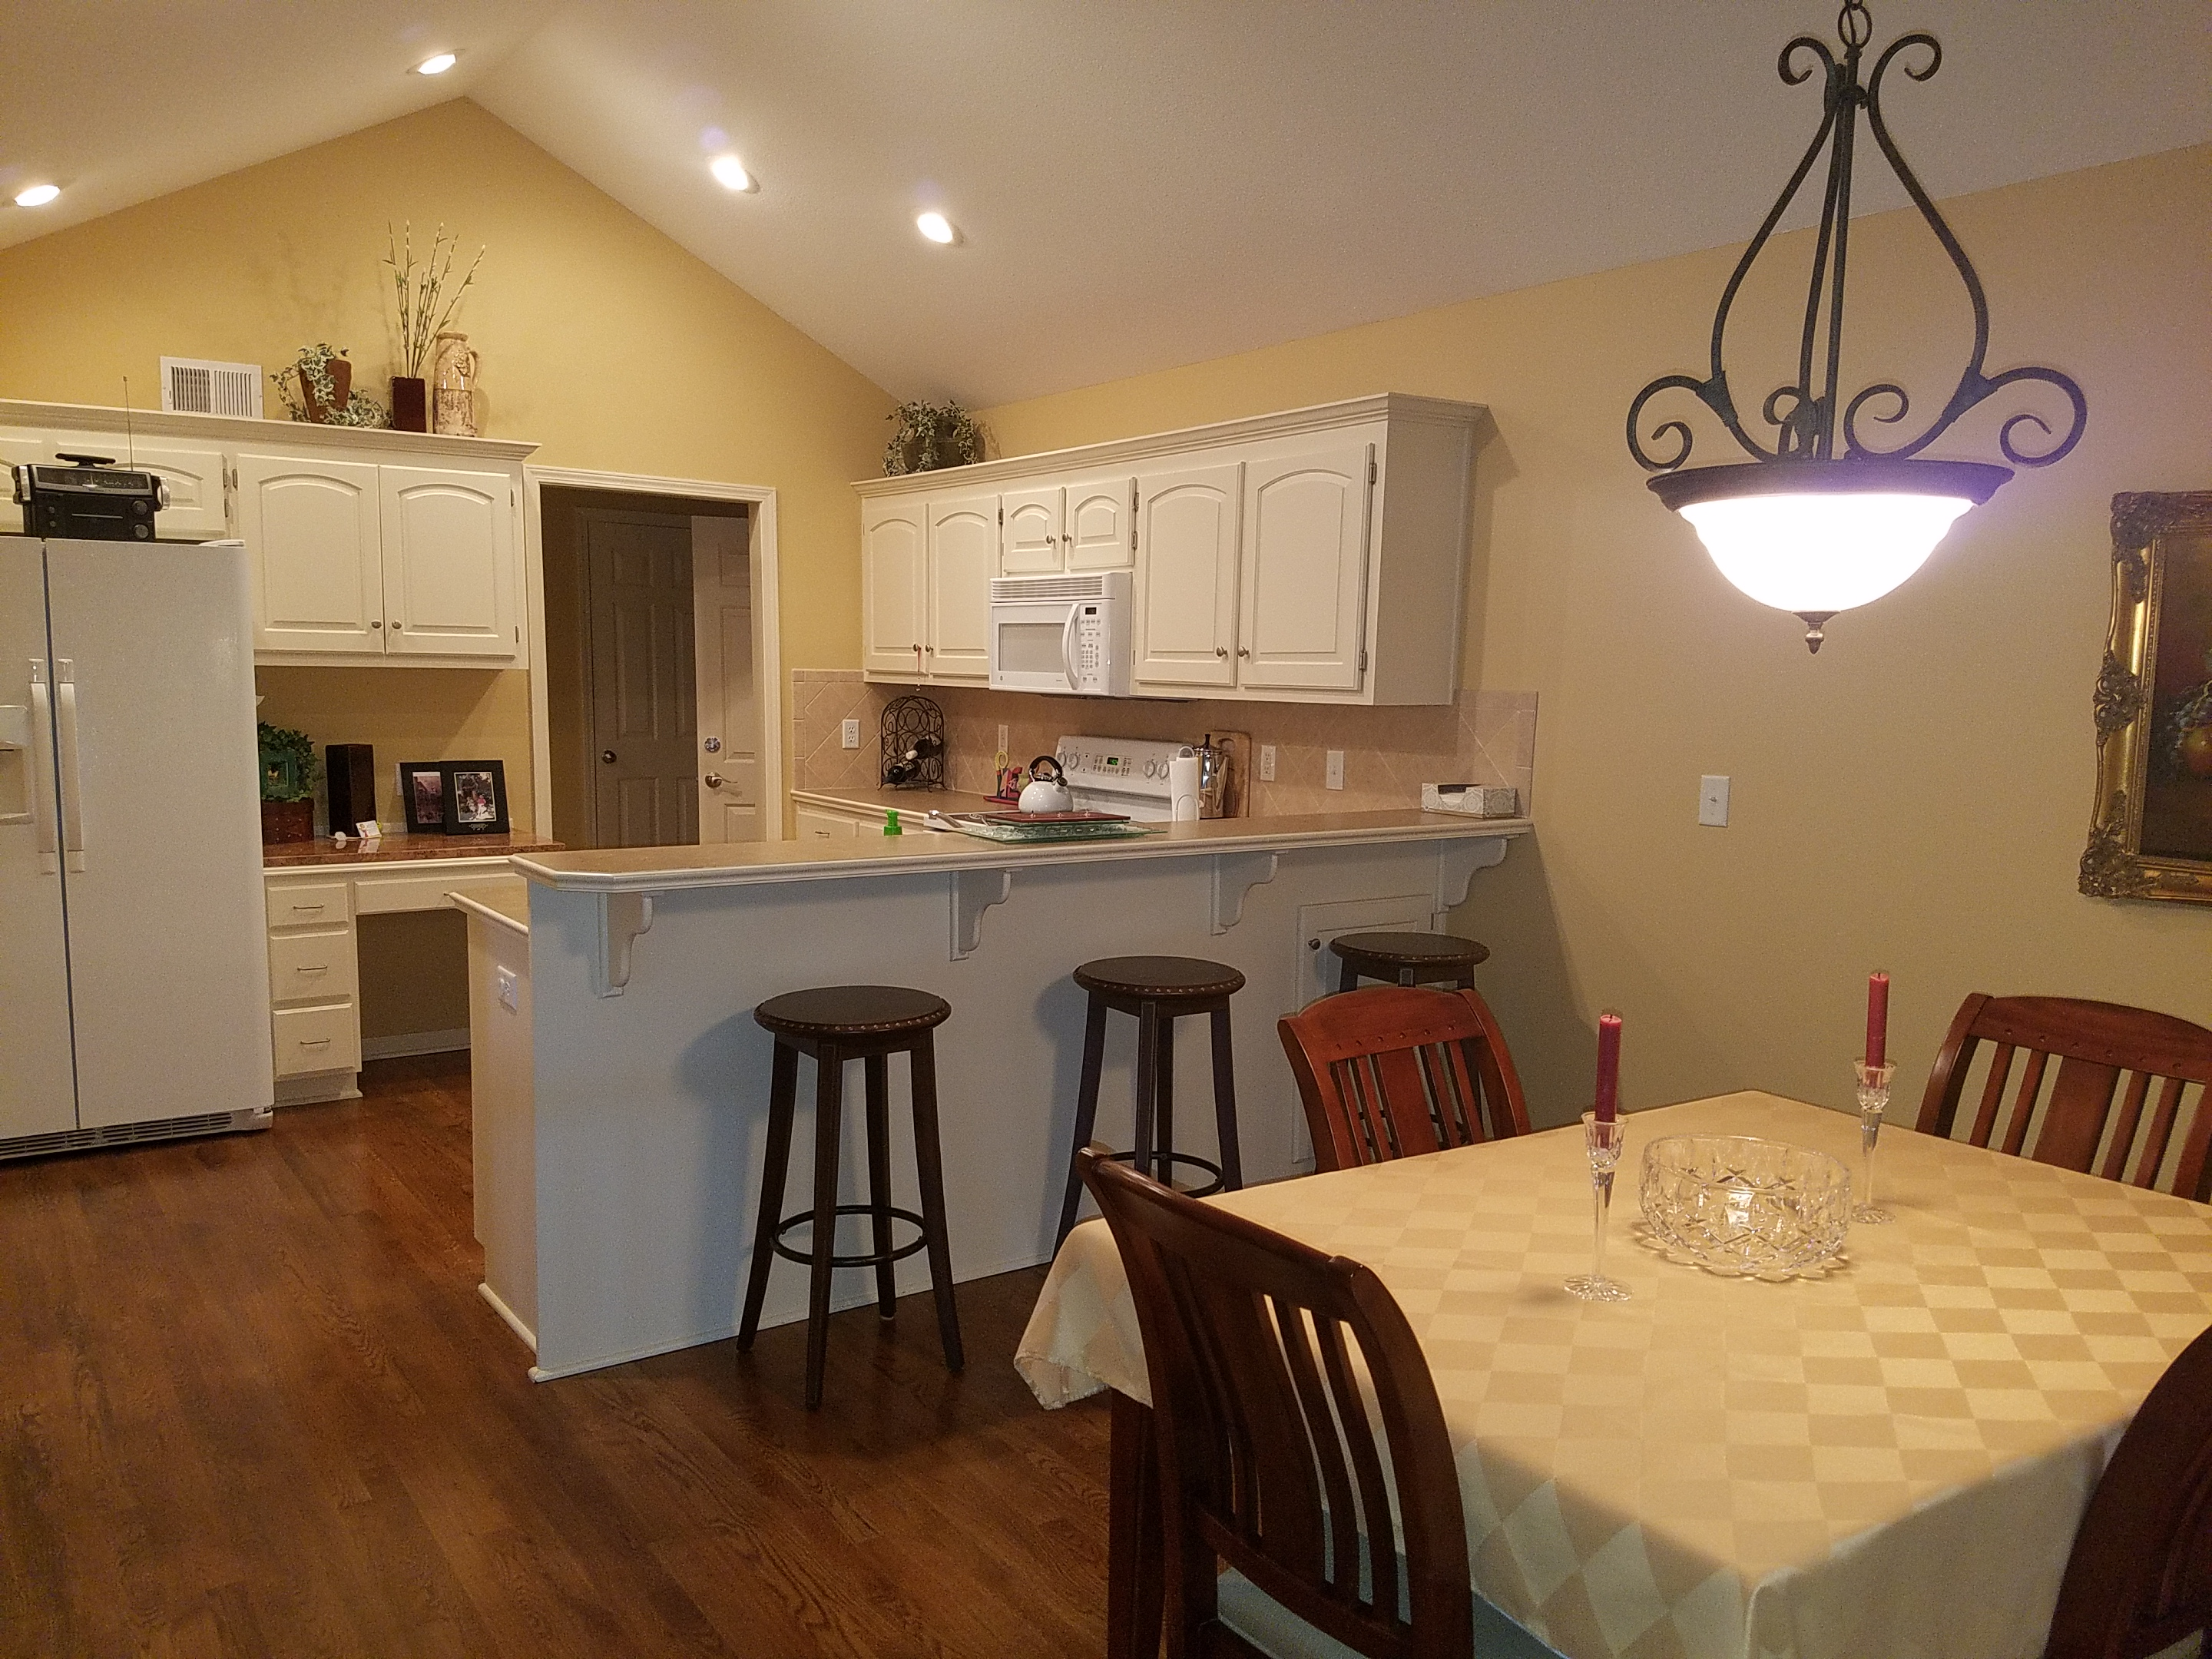 An example of an affordable, but beautiful, condo